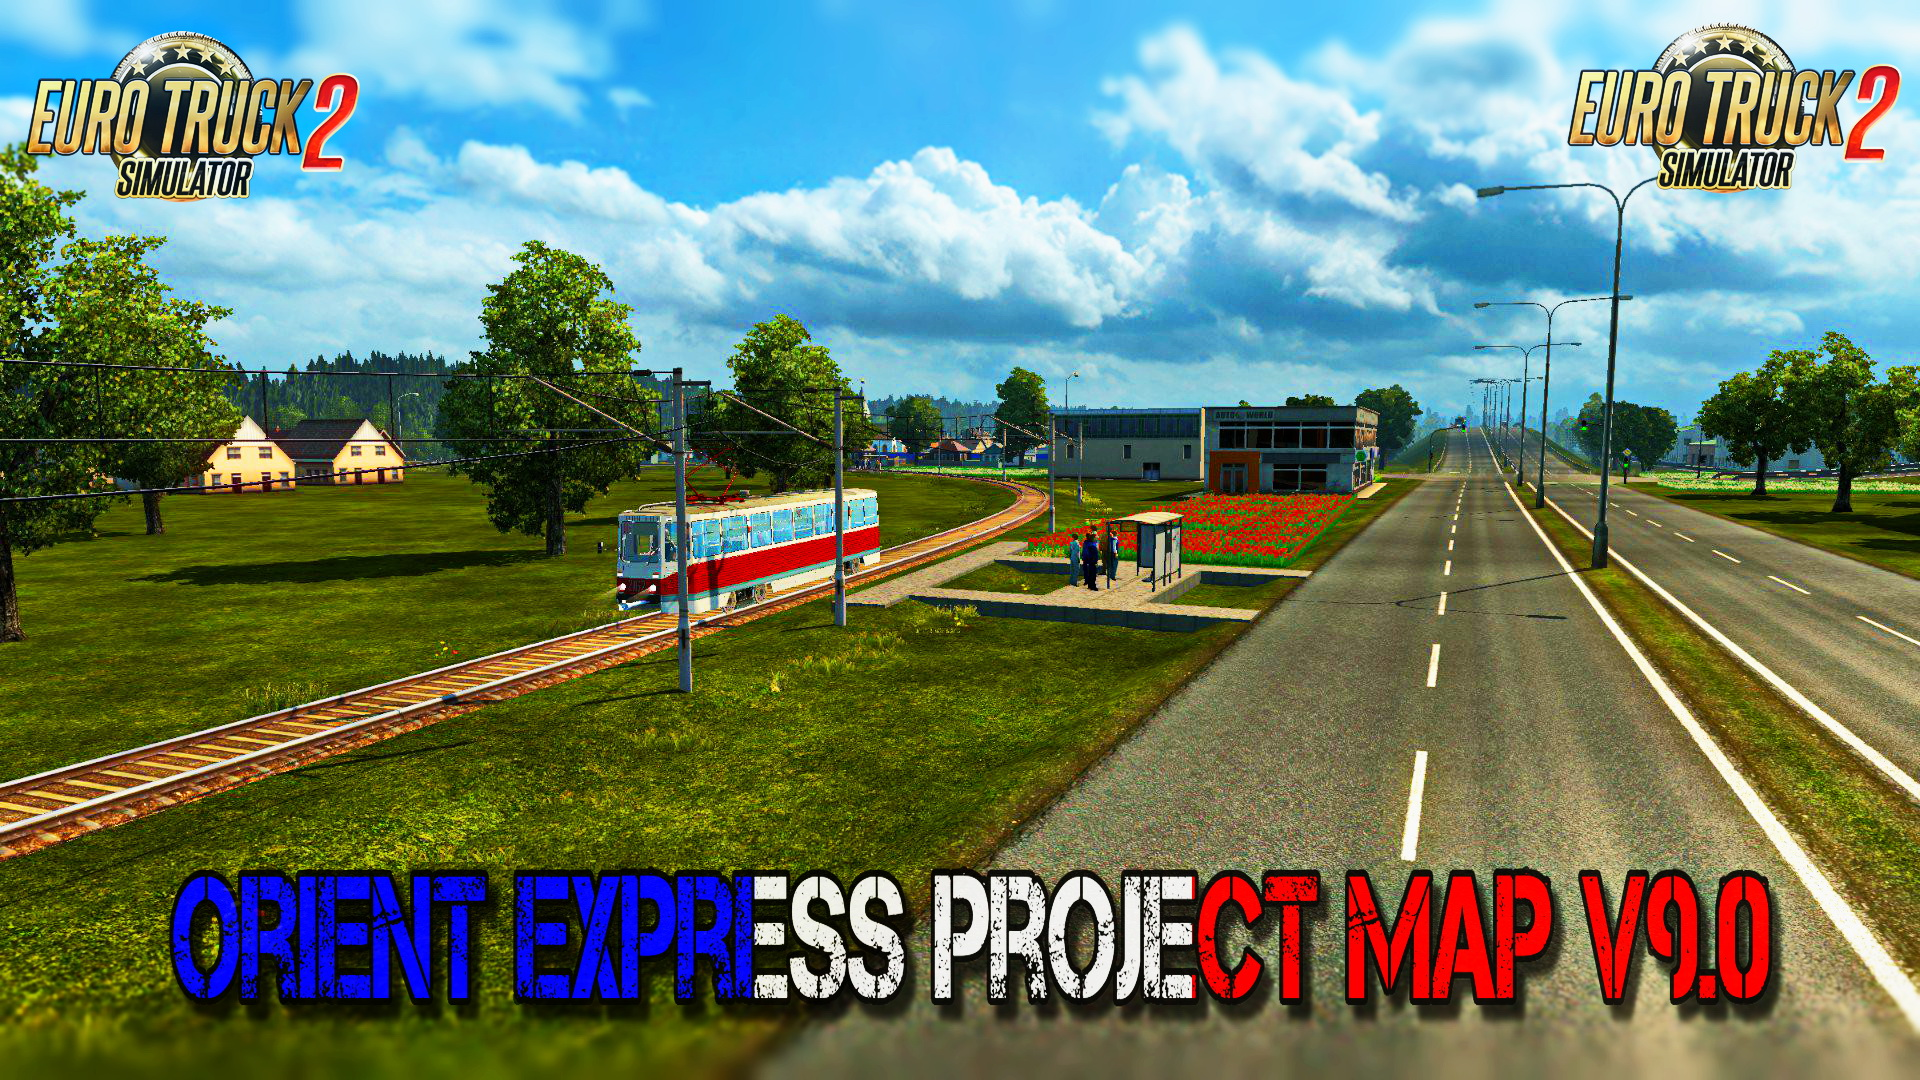 Orient Express Project Map v9.0